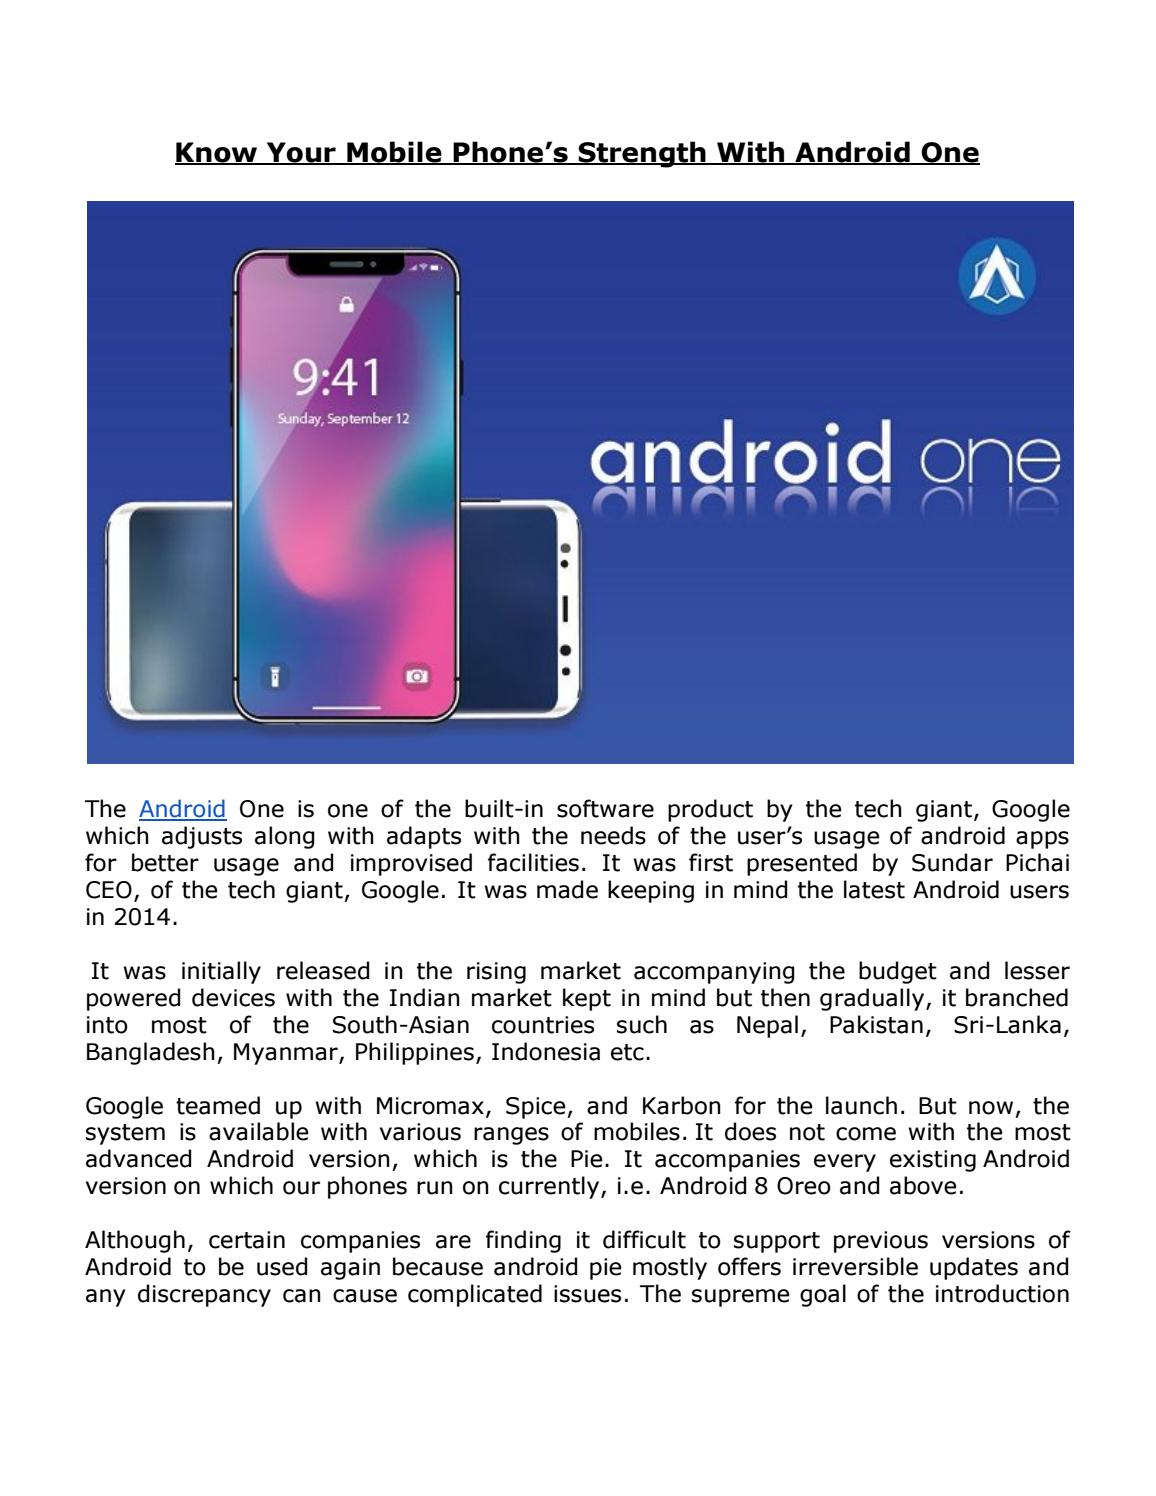 Know Your Mobile Phone's Strength With Android One by